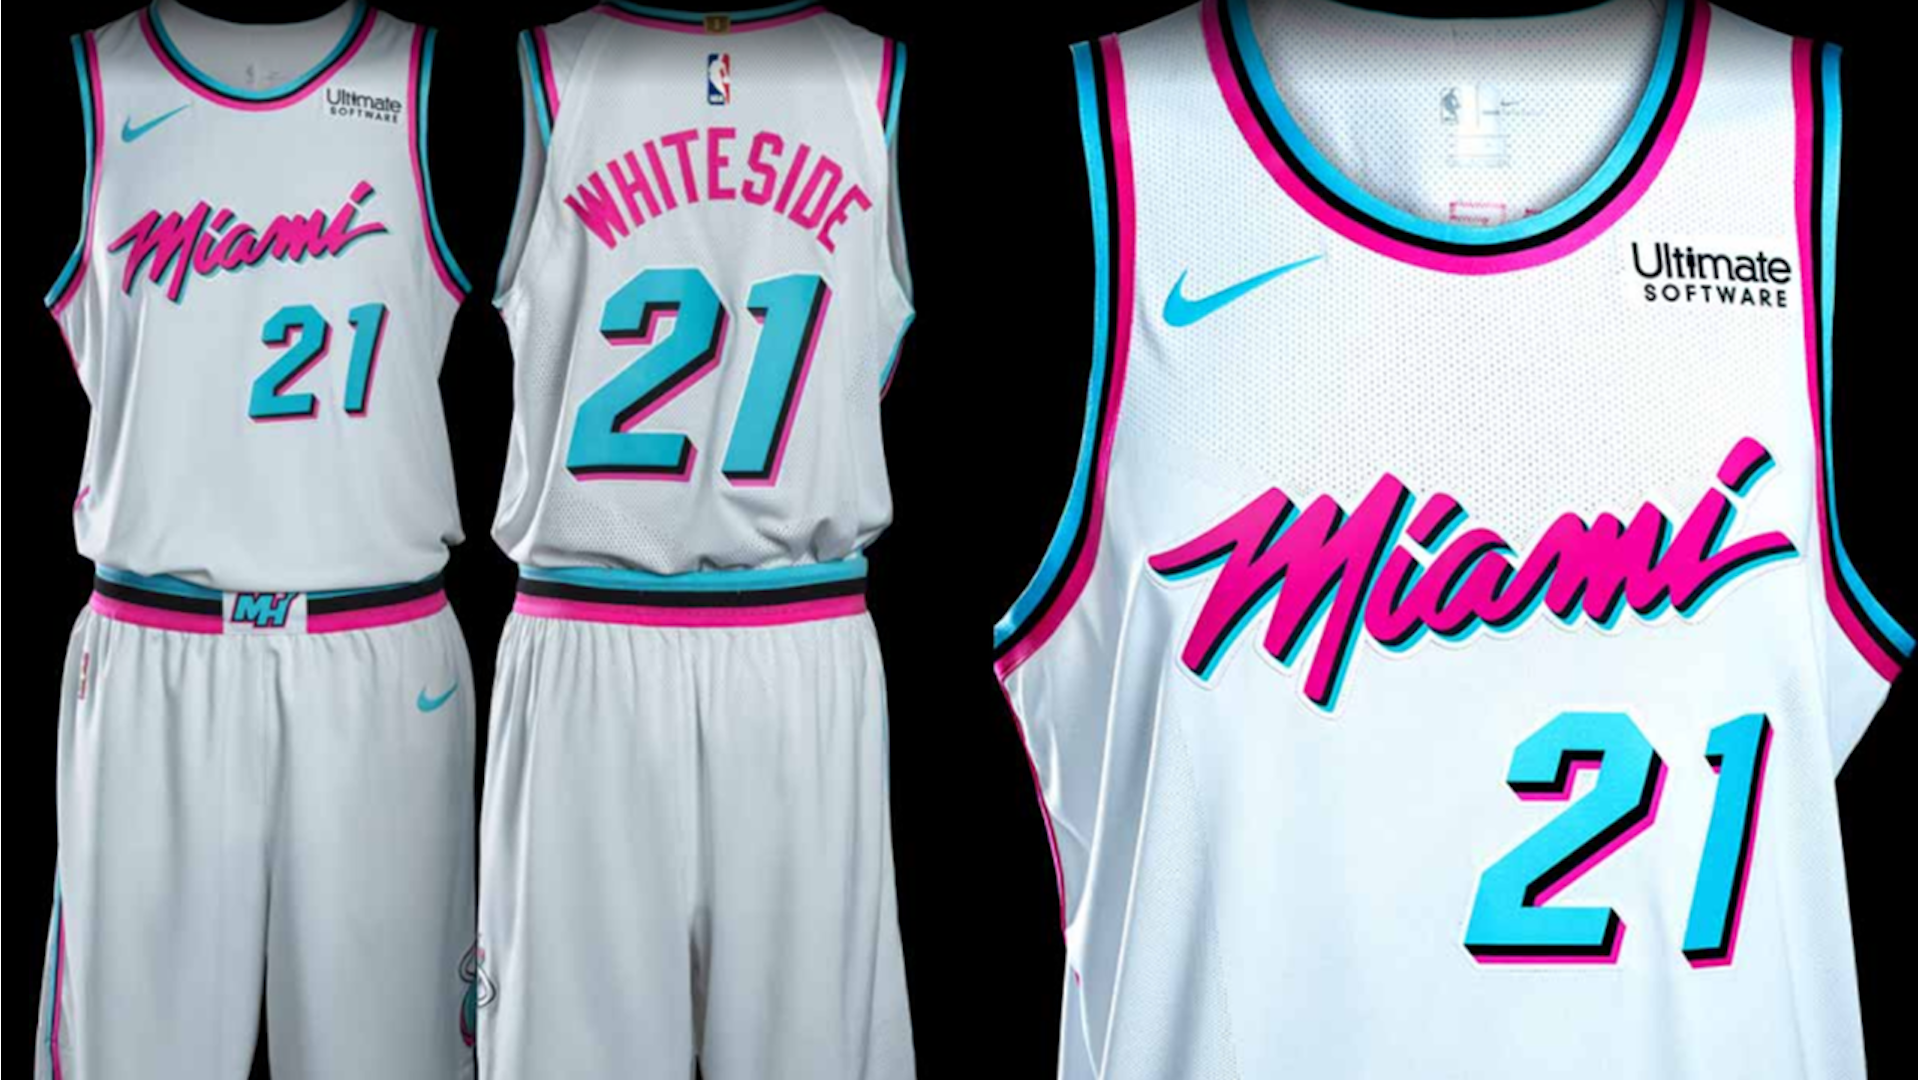 Step Aside Crockett Tubbs Heat S Vice Uniforms Are Out South Florida Sun Sentinel South Florida Sun Sentinel